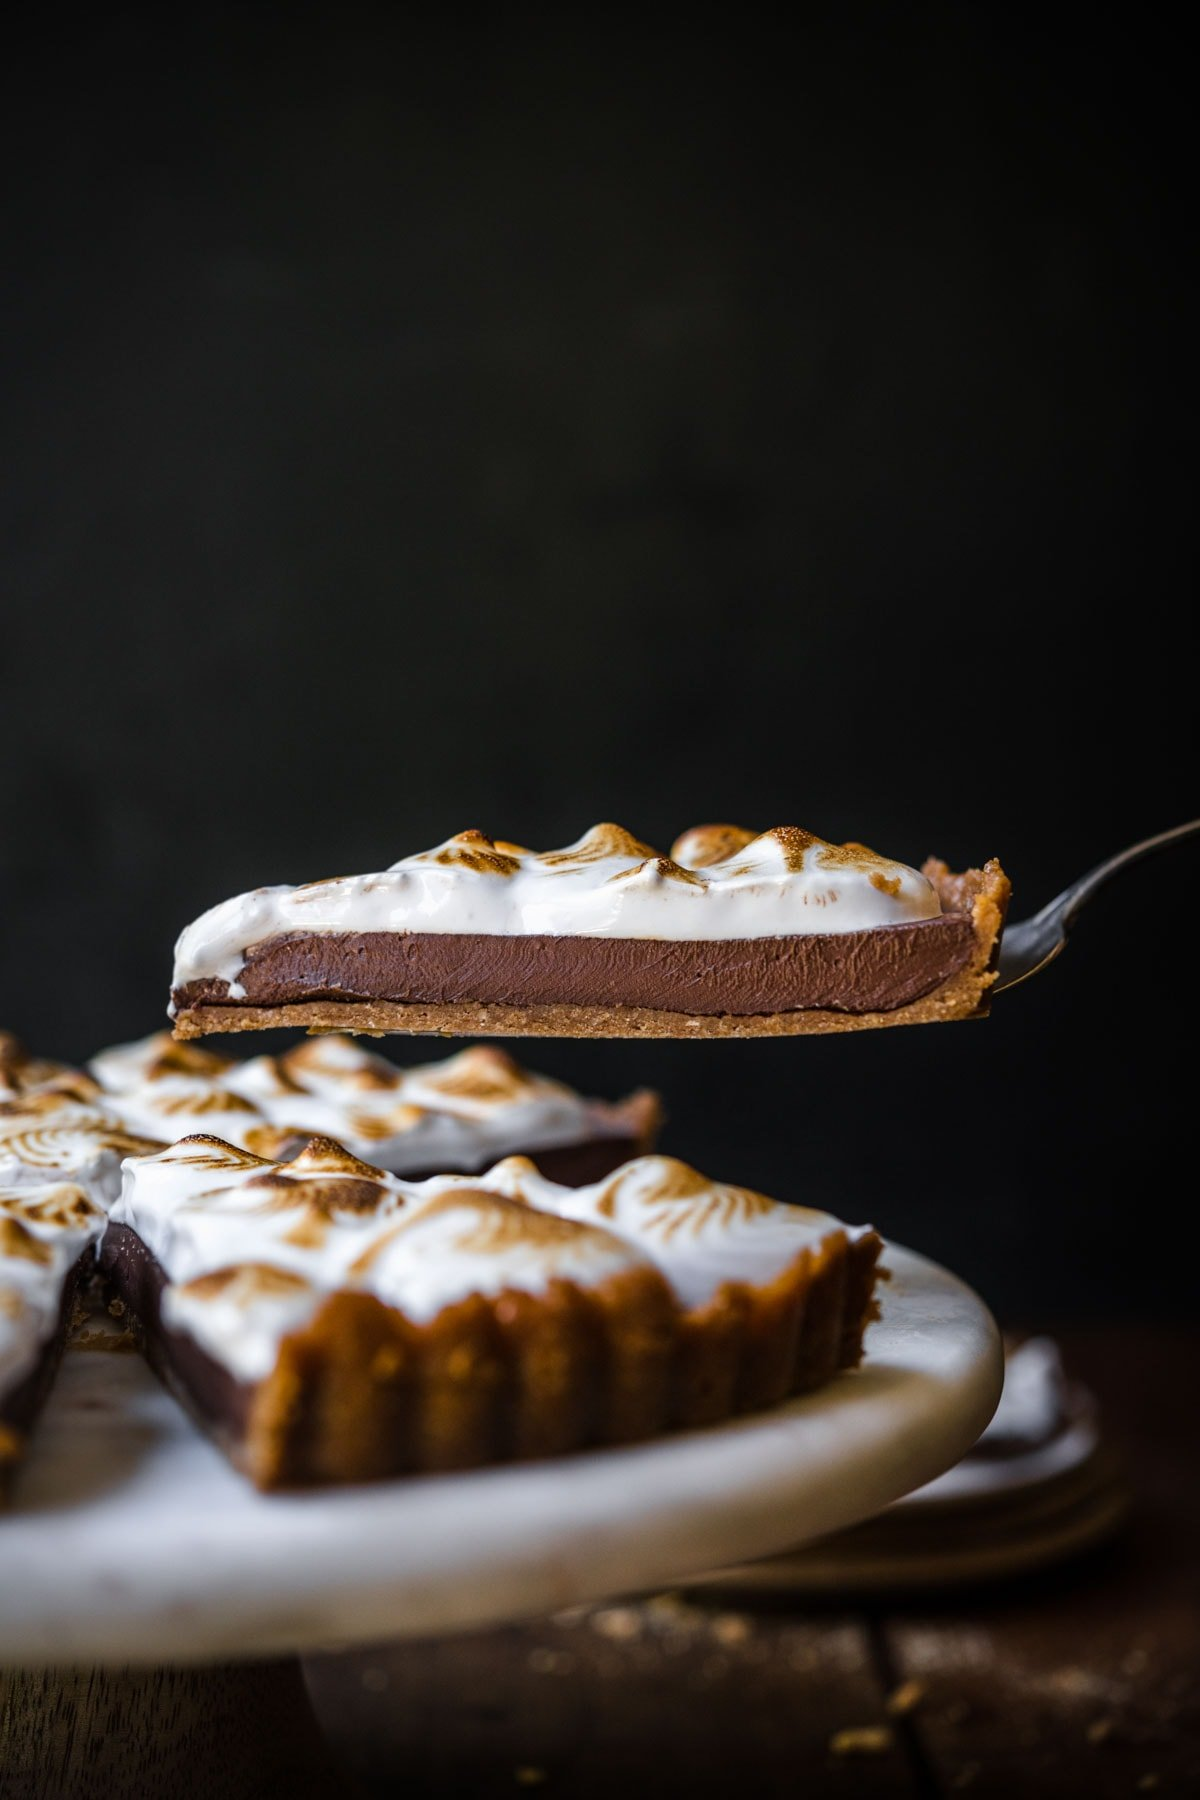 side view of person lifting up slice of vegan s'mores tart from cake stand.